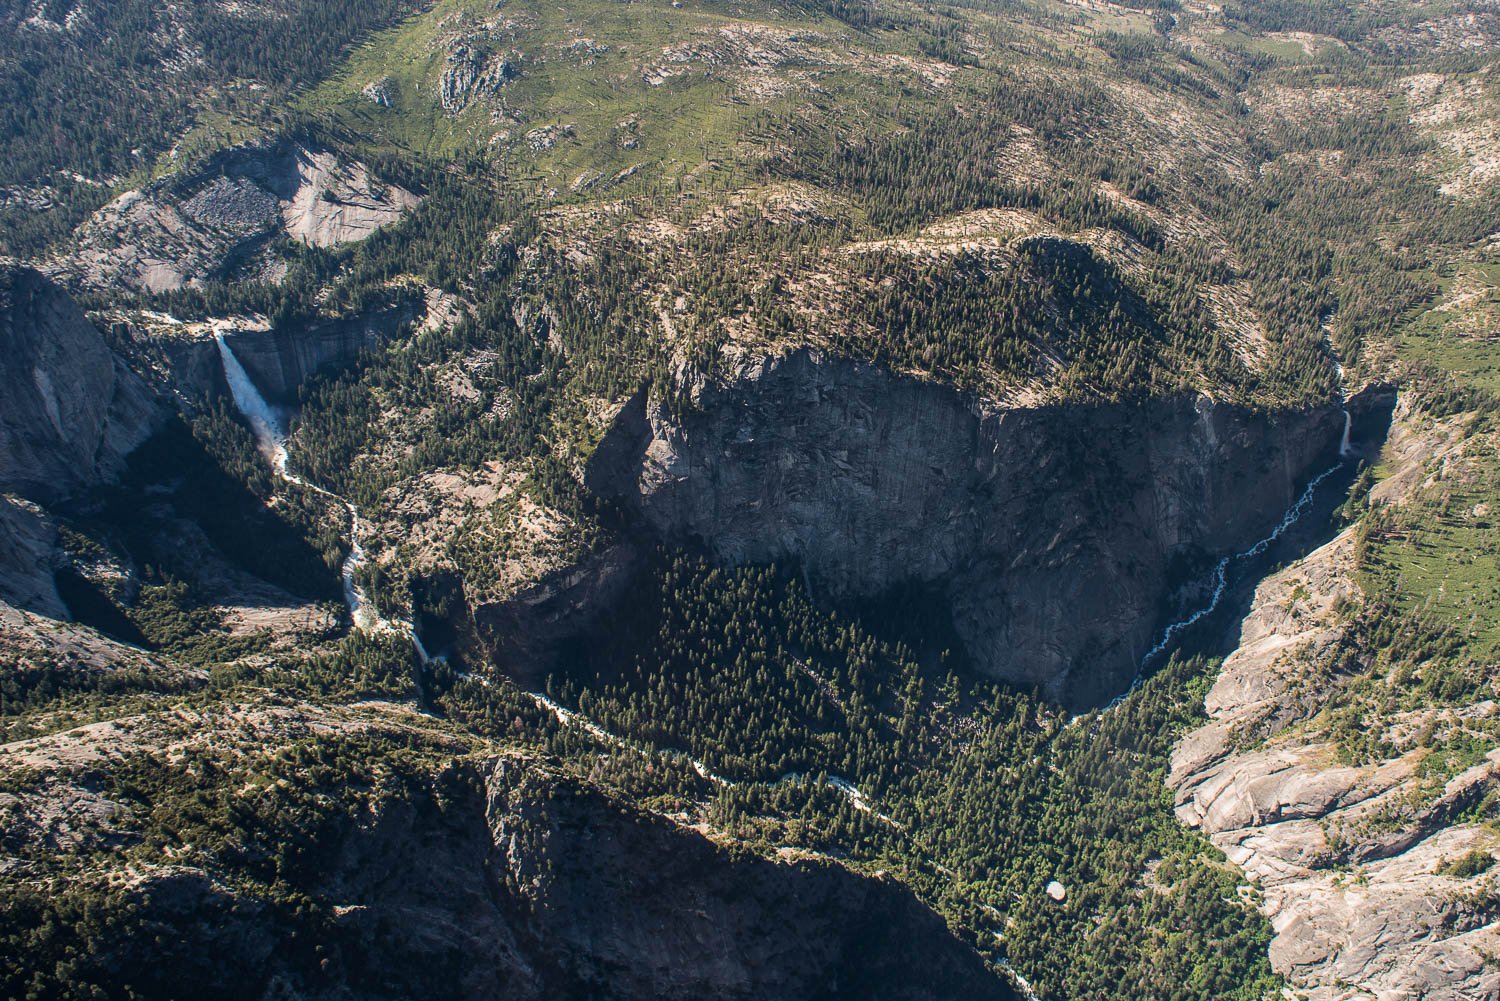 Aerial view of the Mist Trail